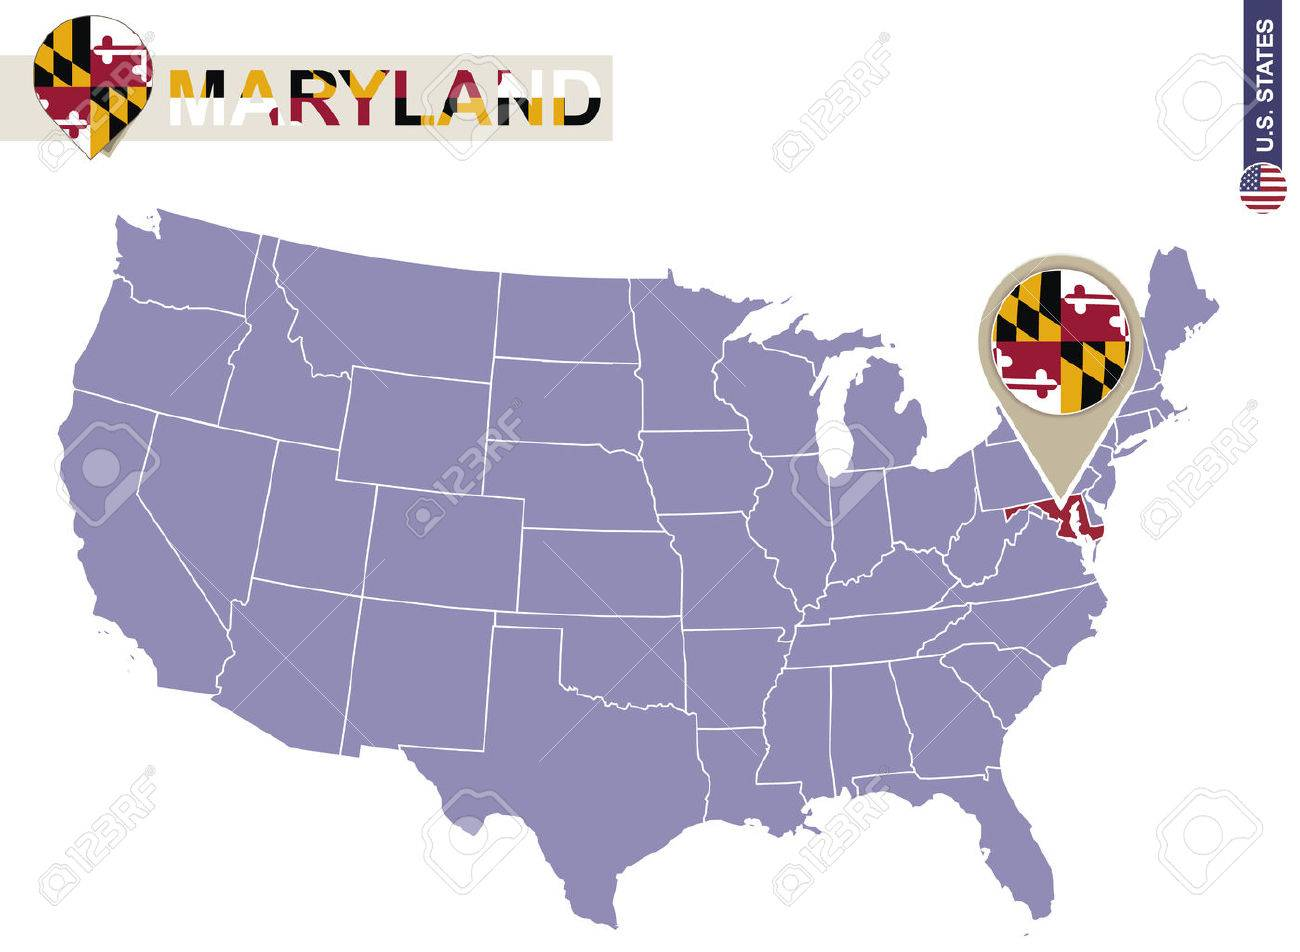 Maryland State On USA Map Maryland Flag And Map US States - Maryland usa map